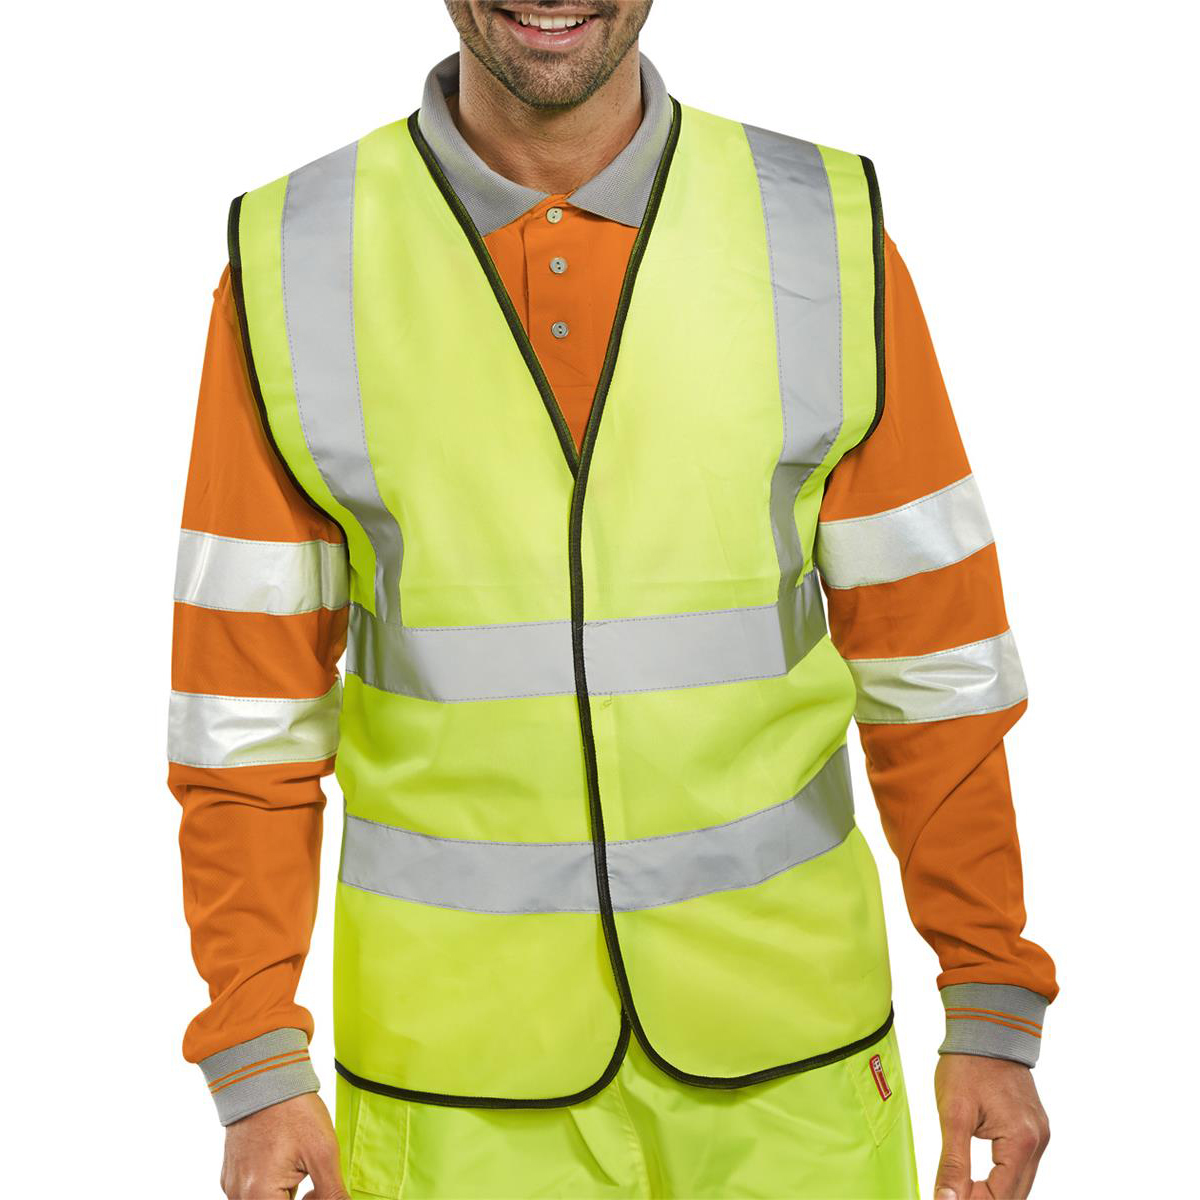 Bseen High Visibility Waistcoat Full App Medium Yellow/Black Piping Ref WCENGM Up to 3 Day Leadtime